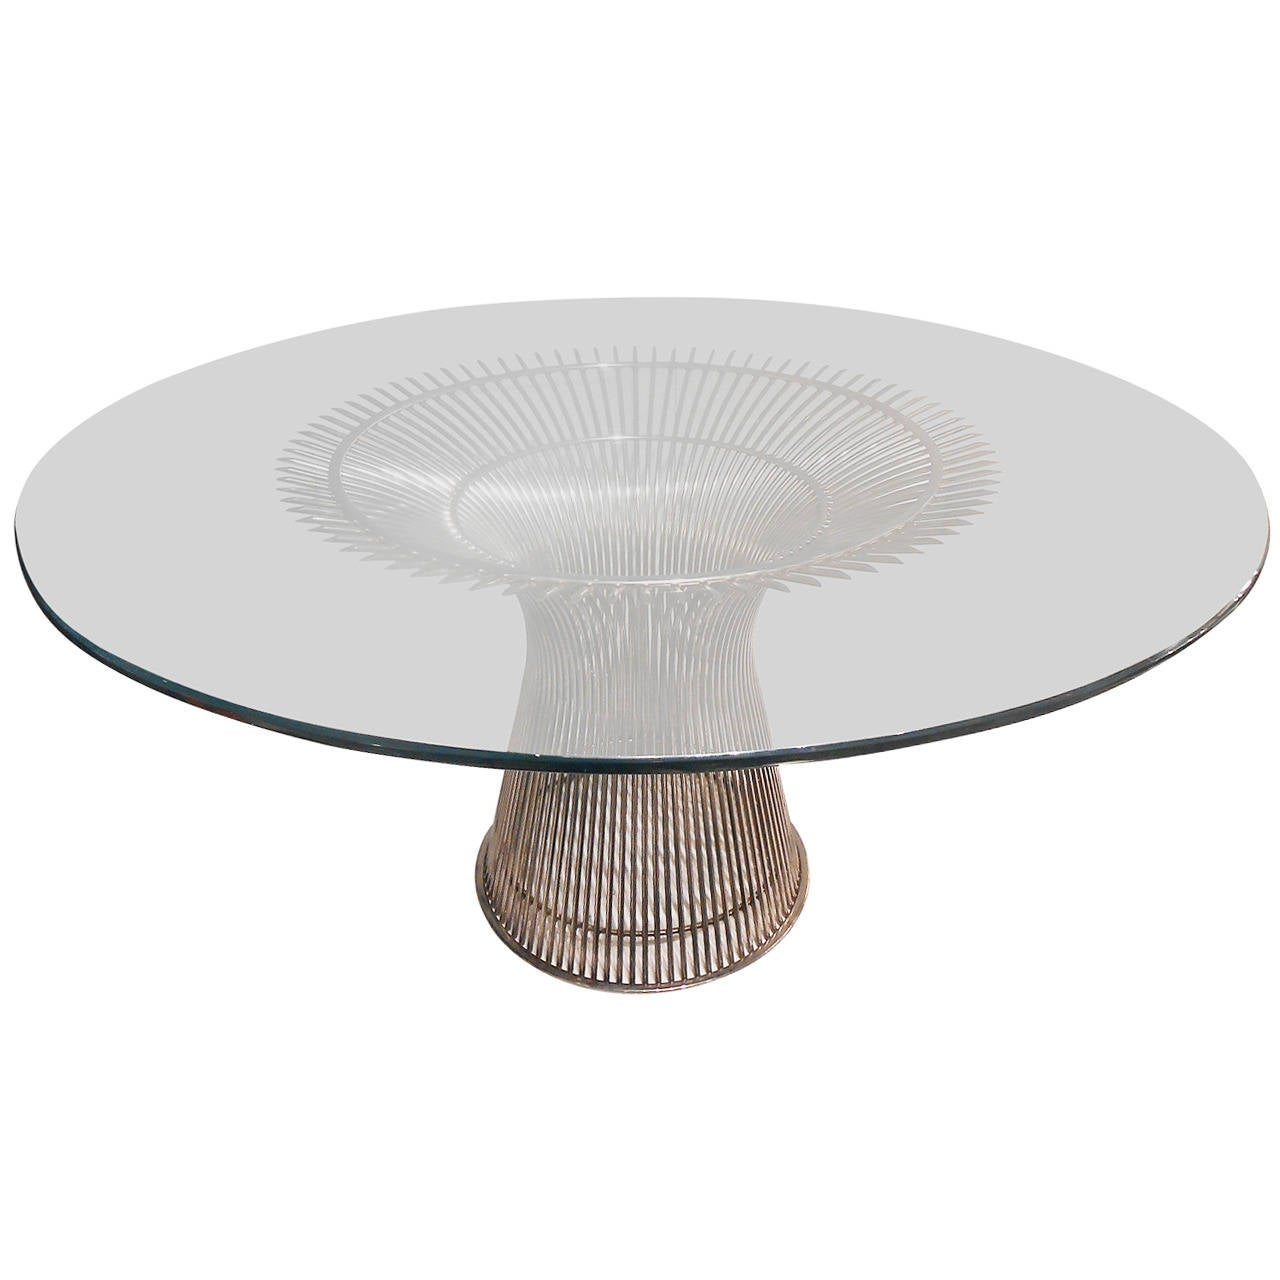 Warren Platner Dining Table for Knoll at 1stdibs : 1851032l from www.1stdibs.com size 1280 x 1280 jpeg 75kB